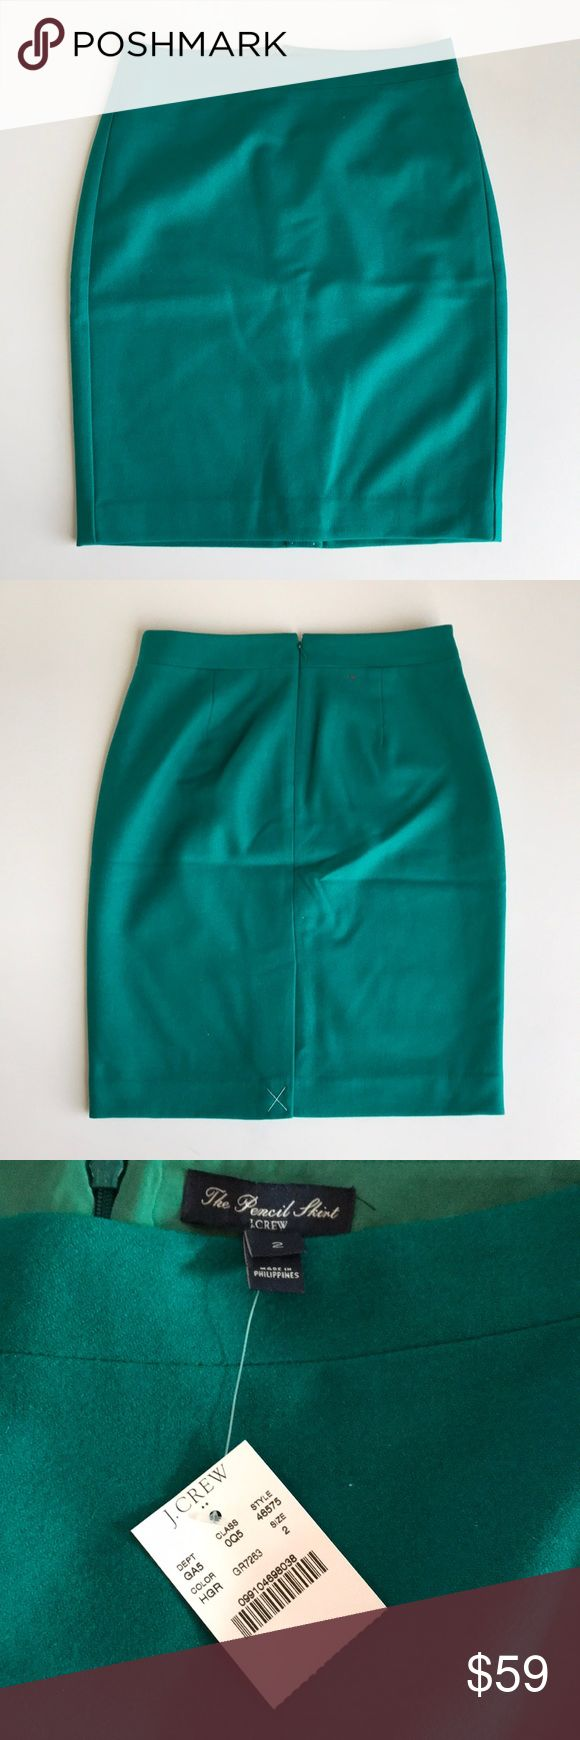 "J. Crew Green Pencil Skirt in Double-Serge Wool Brand new with tags. Sits at waist. Back vent, back zip, fully lined. Length: 21.5"", waist: 14.5"". 70% wool, 30% viscose. Emerald green. J. Crew Skirts Midi"